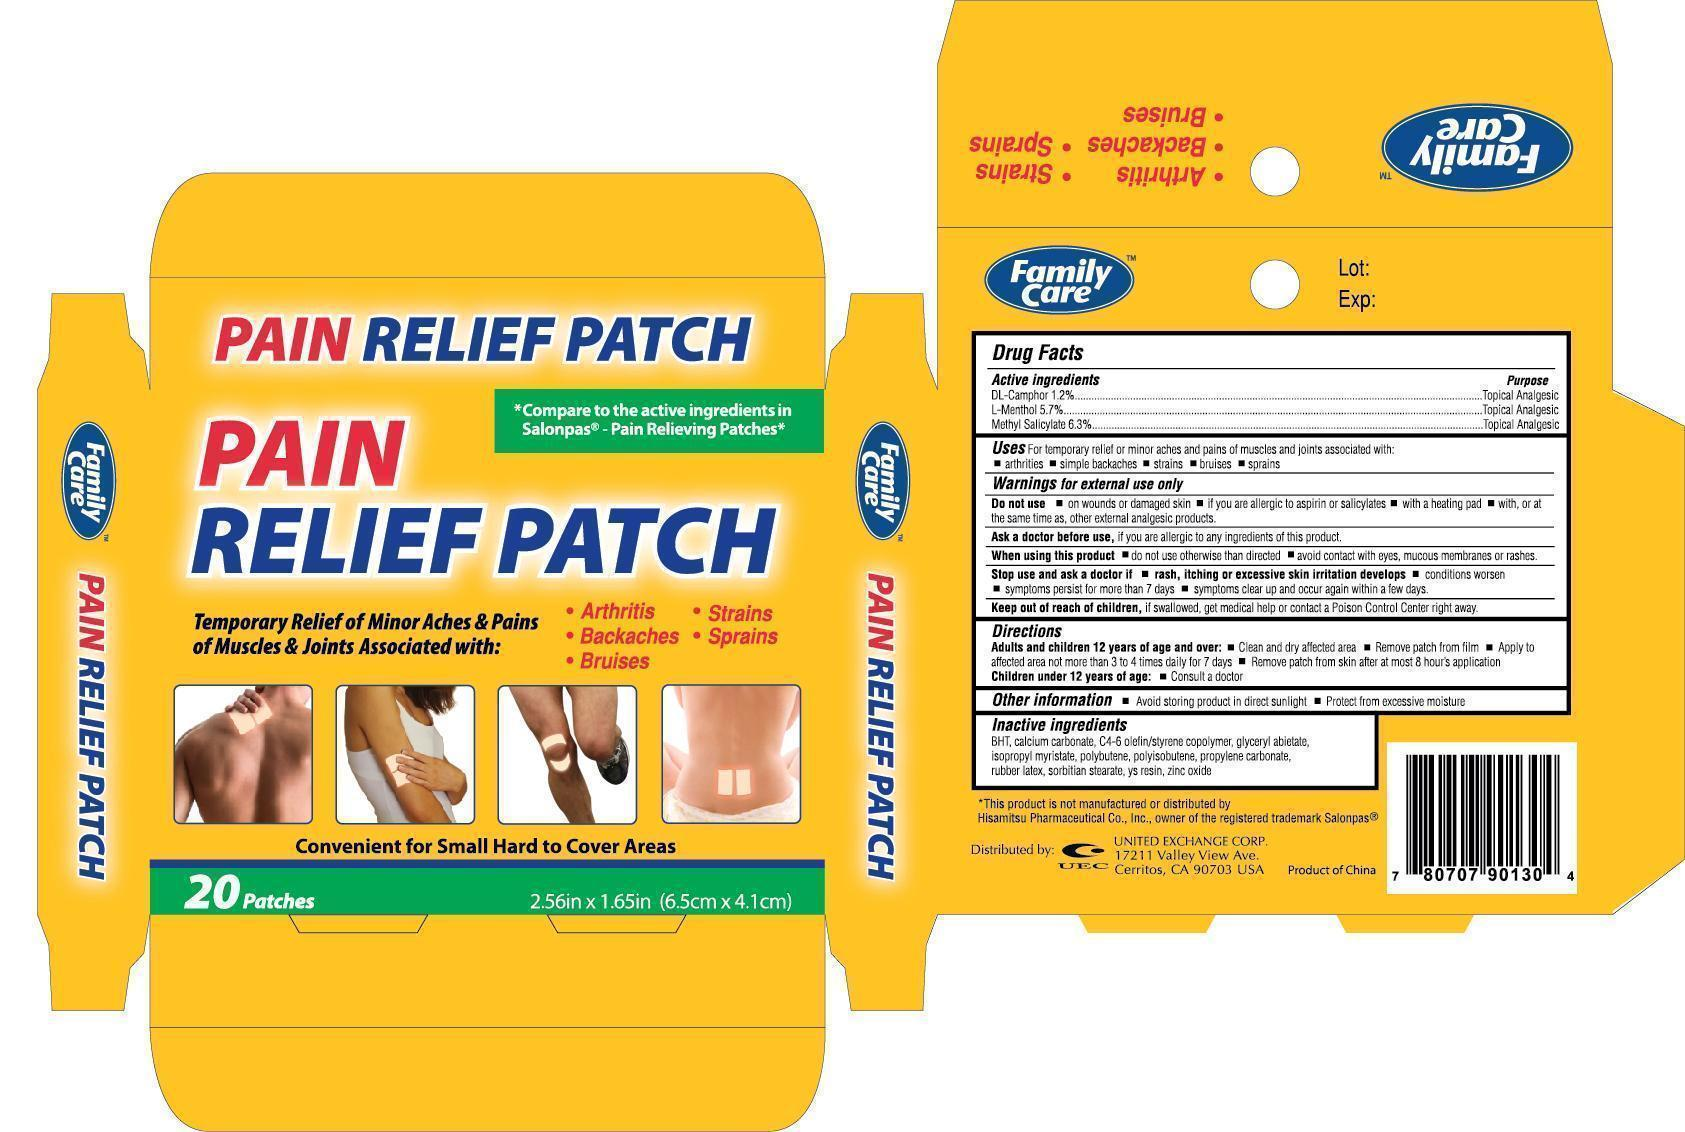 Family Care Pain Relief (Dl-camphor, L-menthol, Methylsalicylate) Patch [United Exchange Corp.]